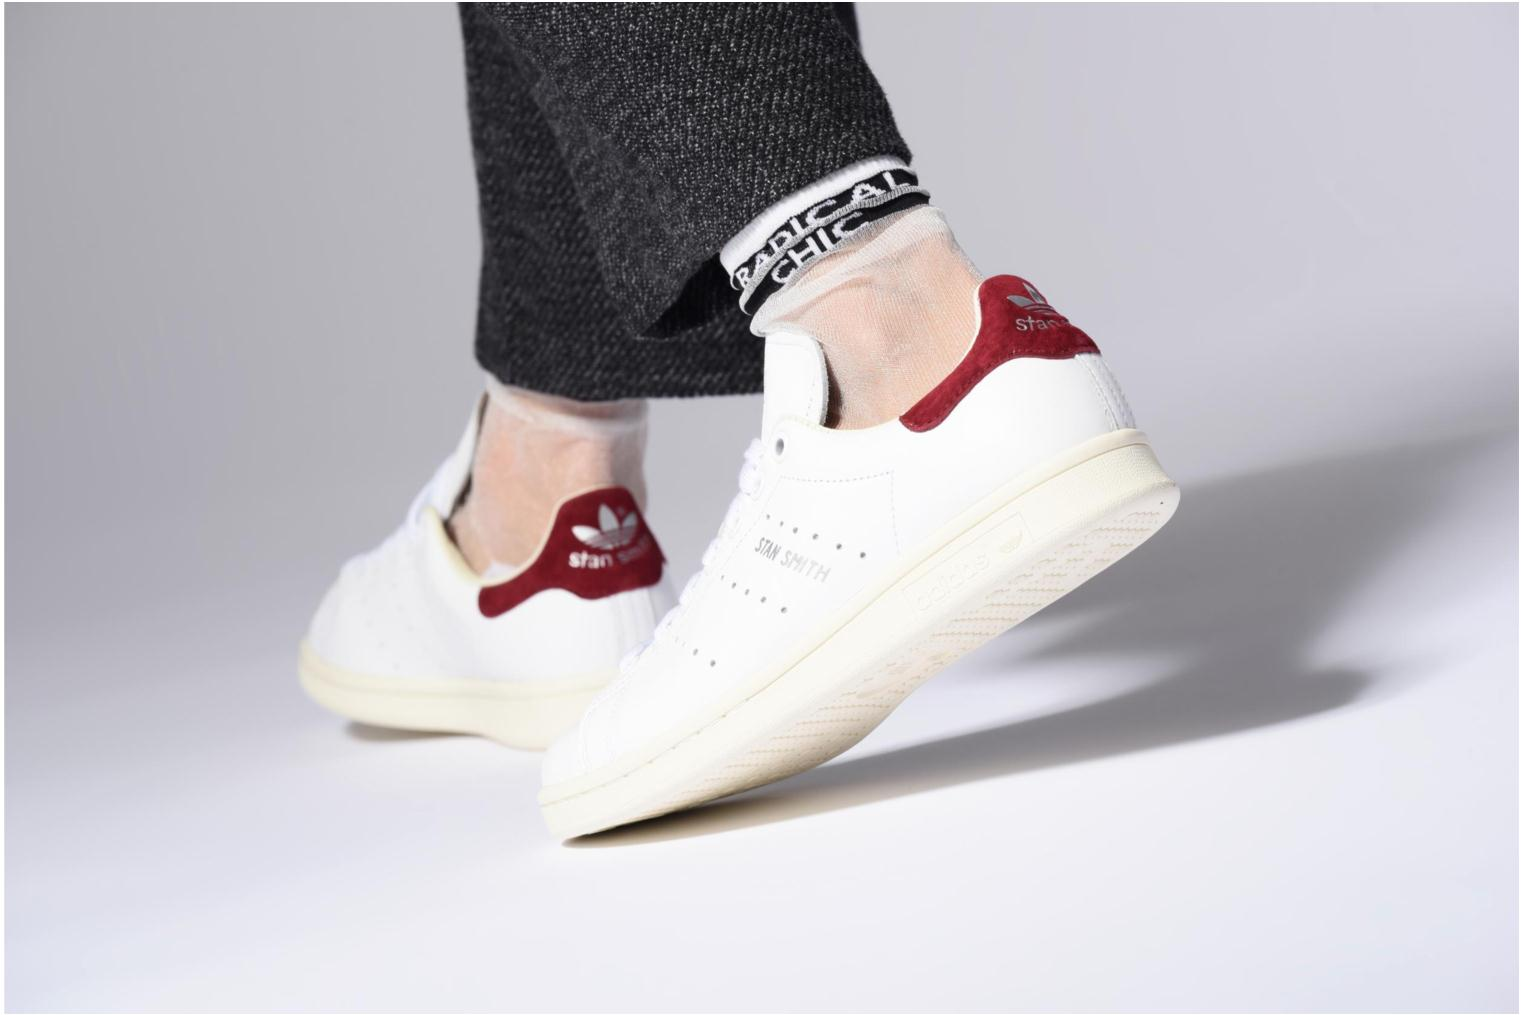 Stan Smith W Blnaco/Blnaco/Blacas